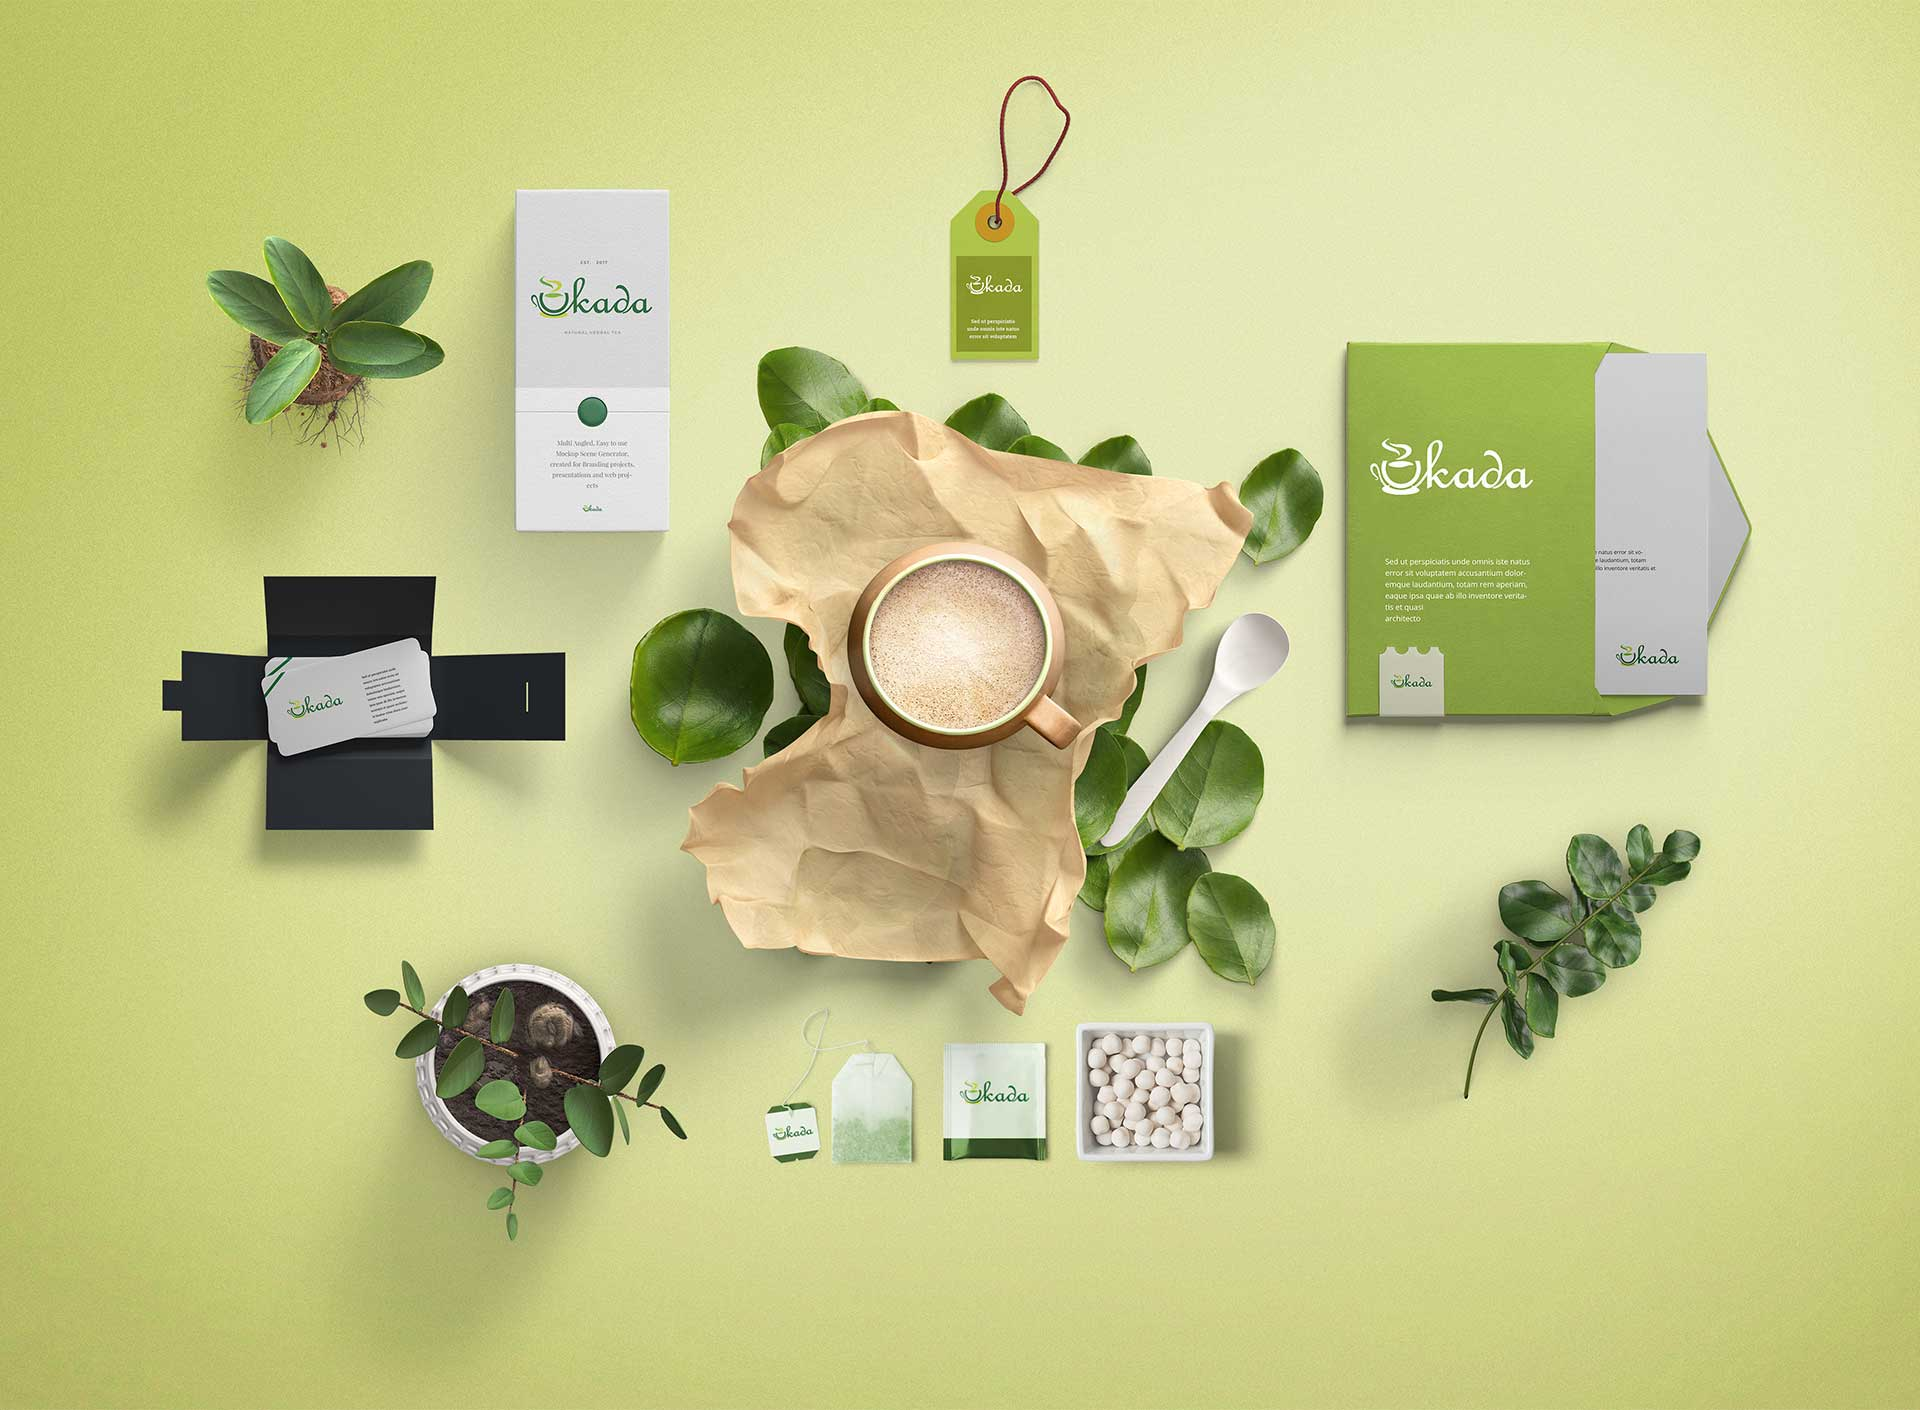 Uikada Logo with Product Design